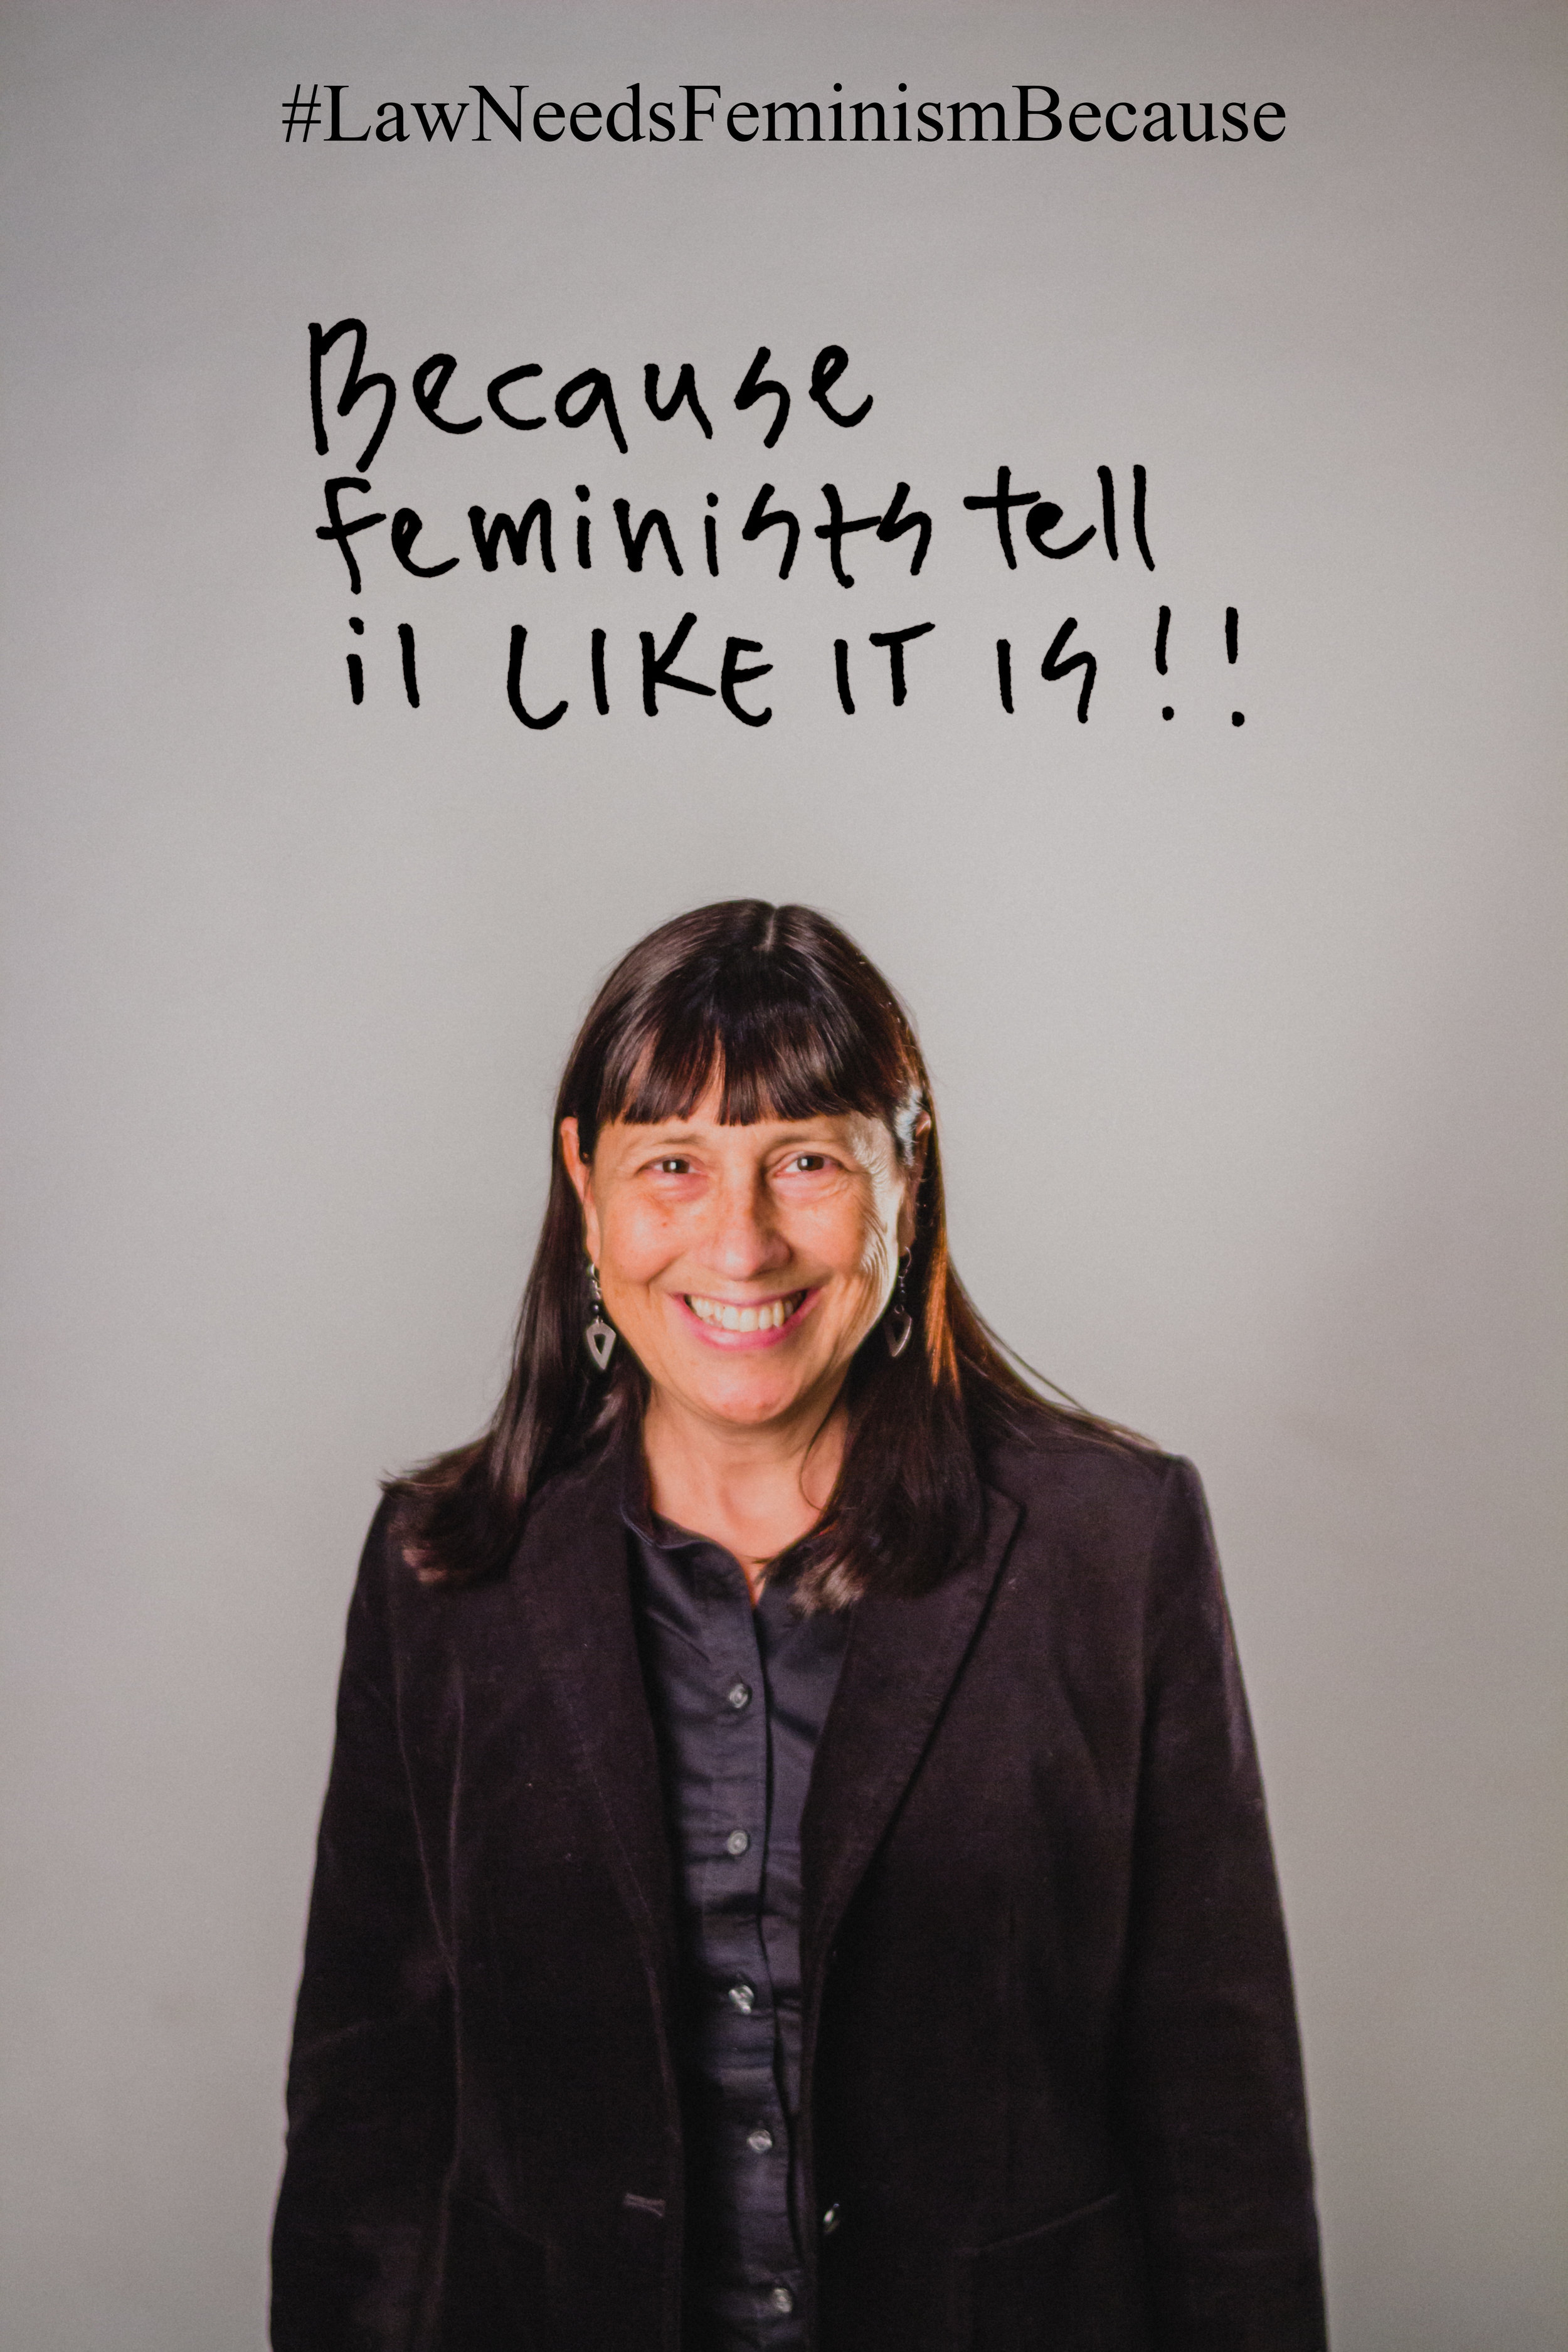 """Law Needs Feminism Because  """"Because feminists tell it like it is!!"""""""